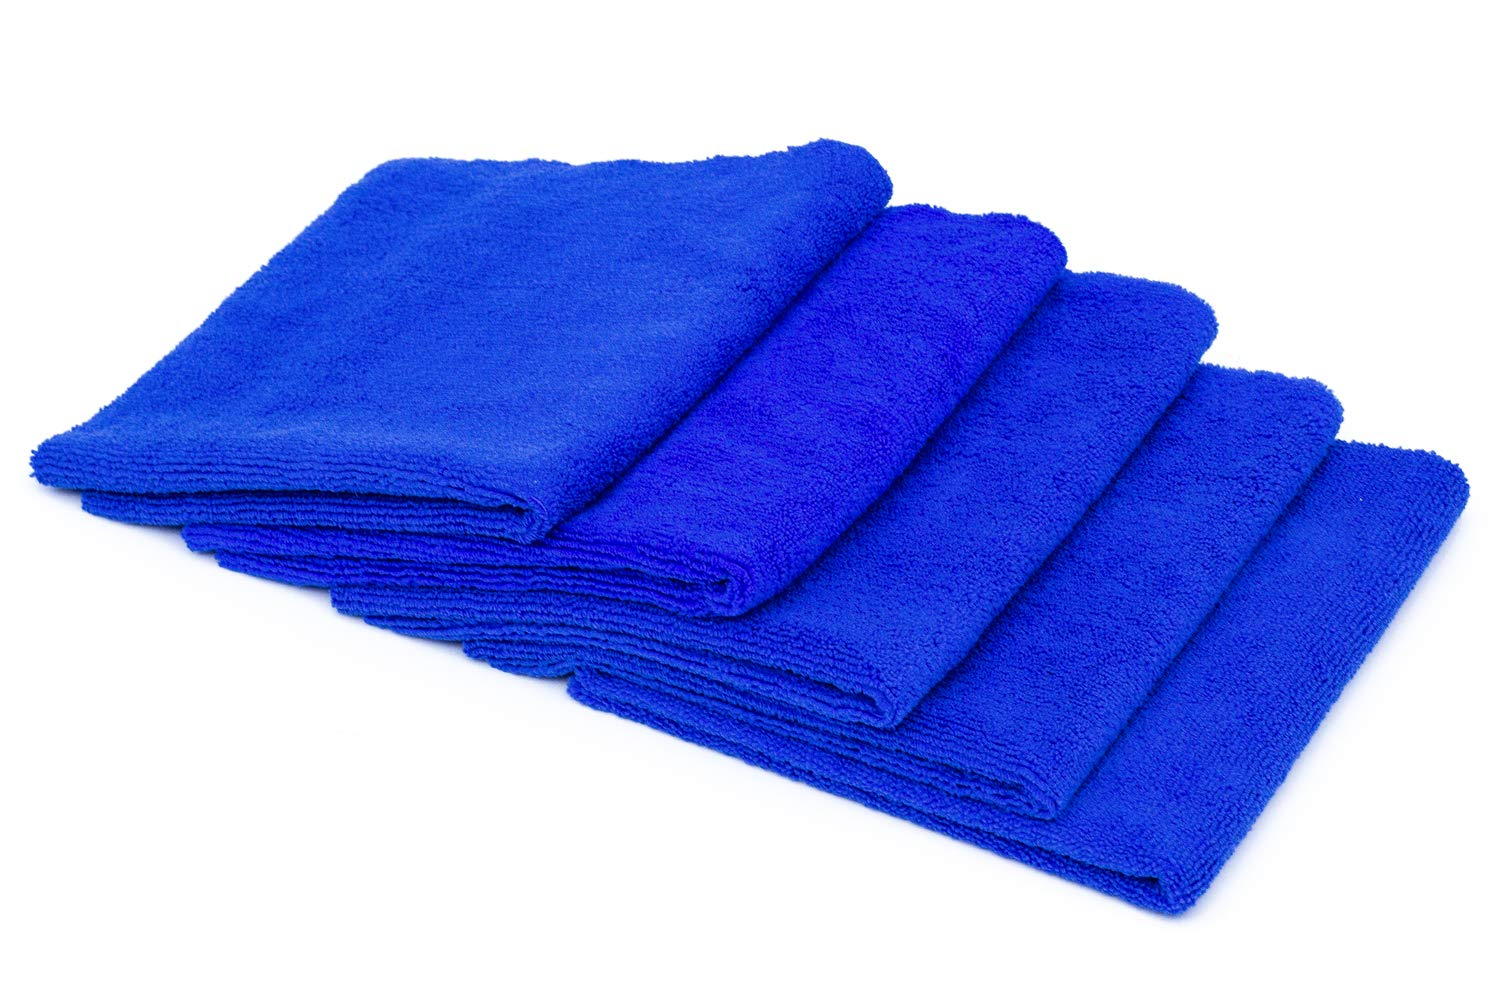 THE RAG COMPANY (5-Pack) 16 in. x 16 in. Professional EDGELESS 365 GSM Premium 70/30 Blend Microfiber POLISHING, Wax Removal and AUTO Detailing Towels (16x16, Royal Blue) 51616-EL-365